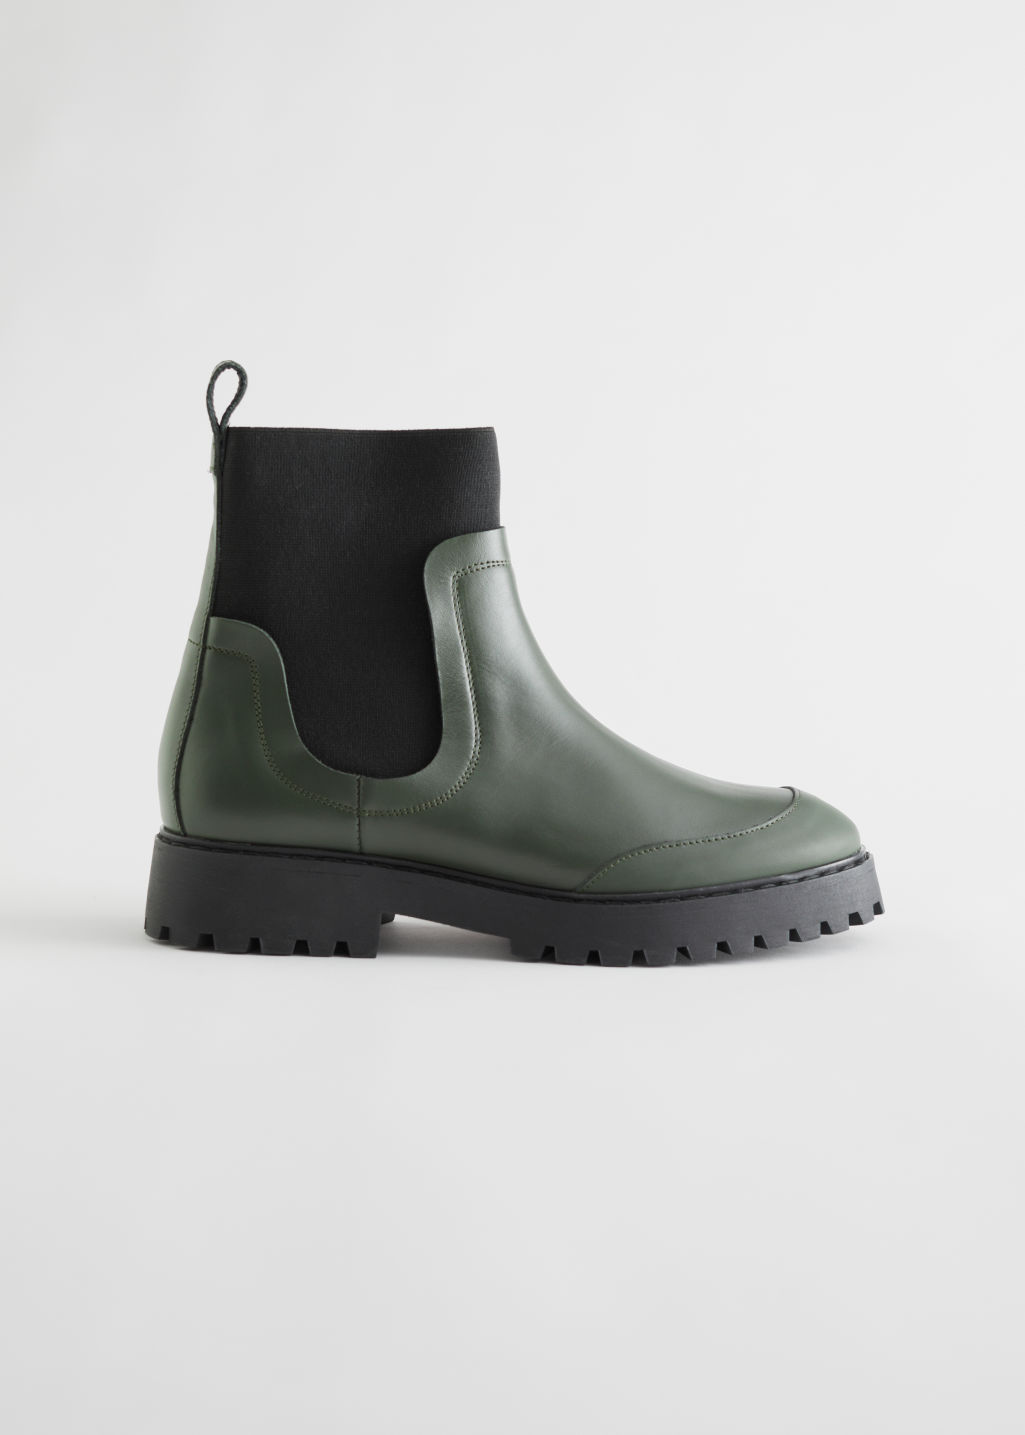 StillLife Left Image of Stories Elasticated Leather Chelsea Boots in Green